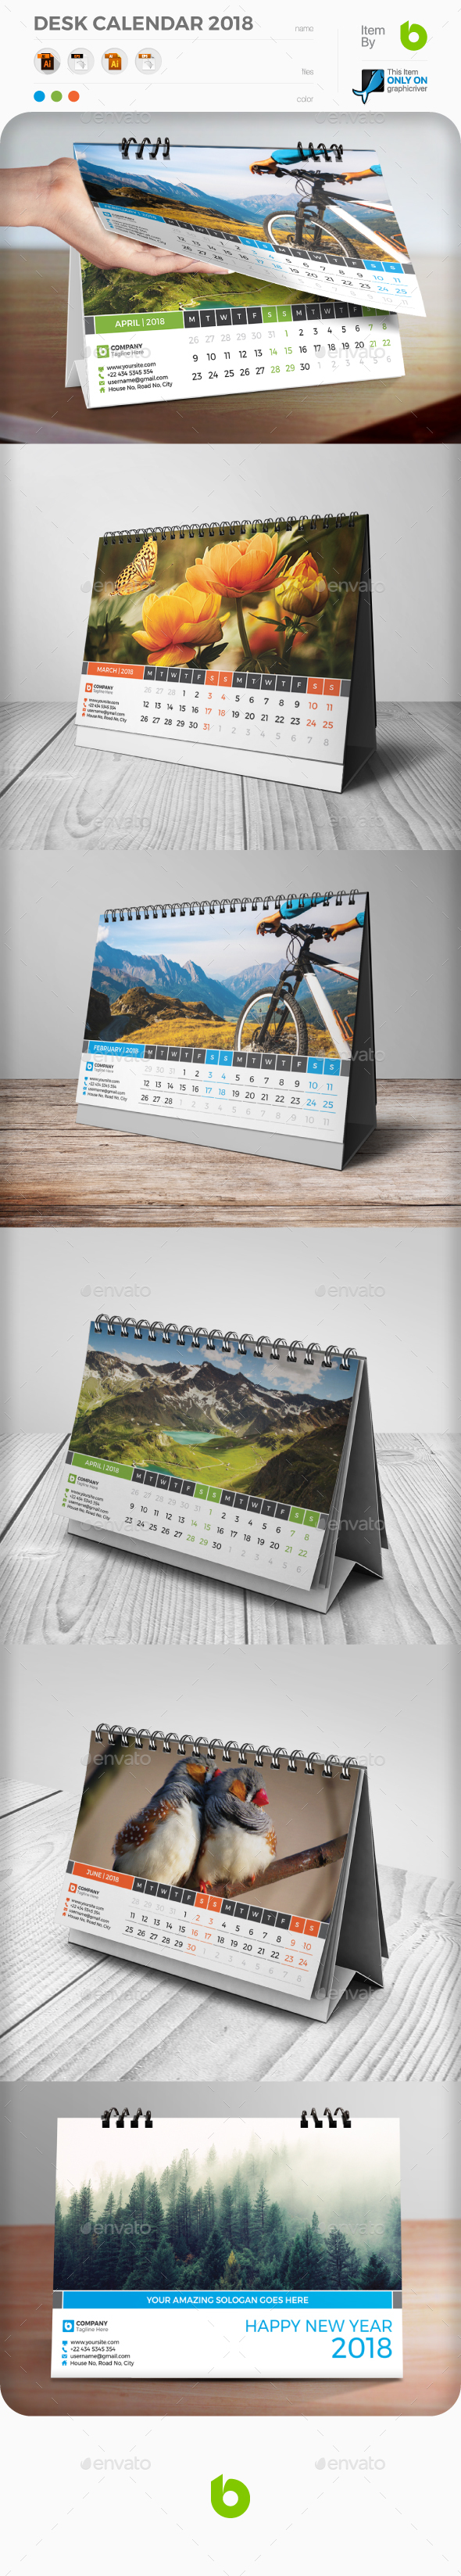 Desk Calendar 2018 - Calendars Stationery